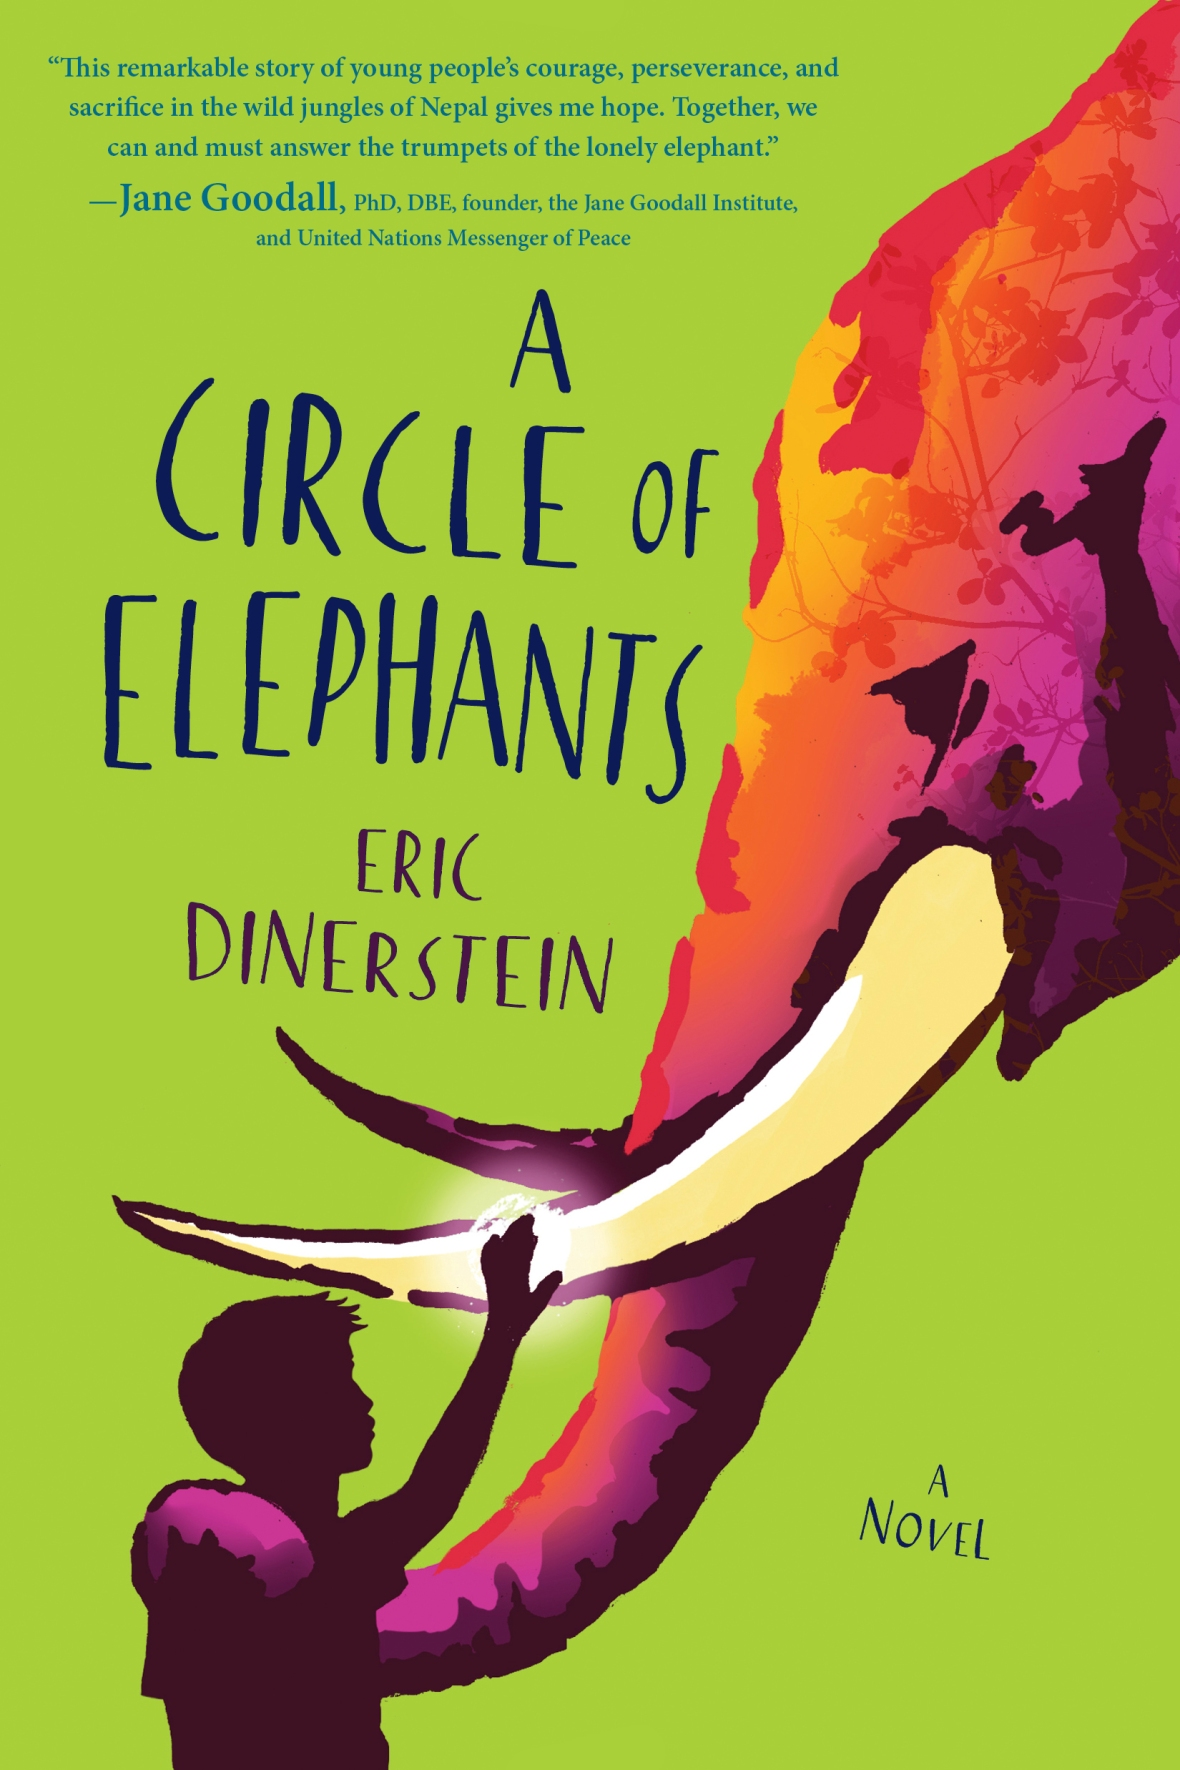 circle of elephants cover 7-16-18